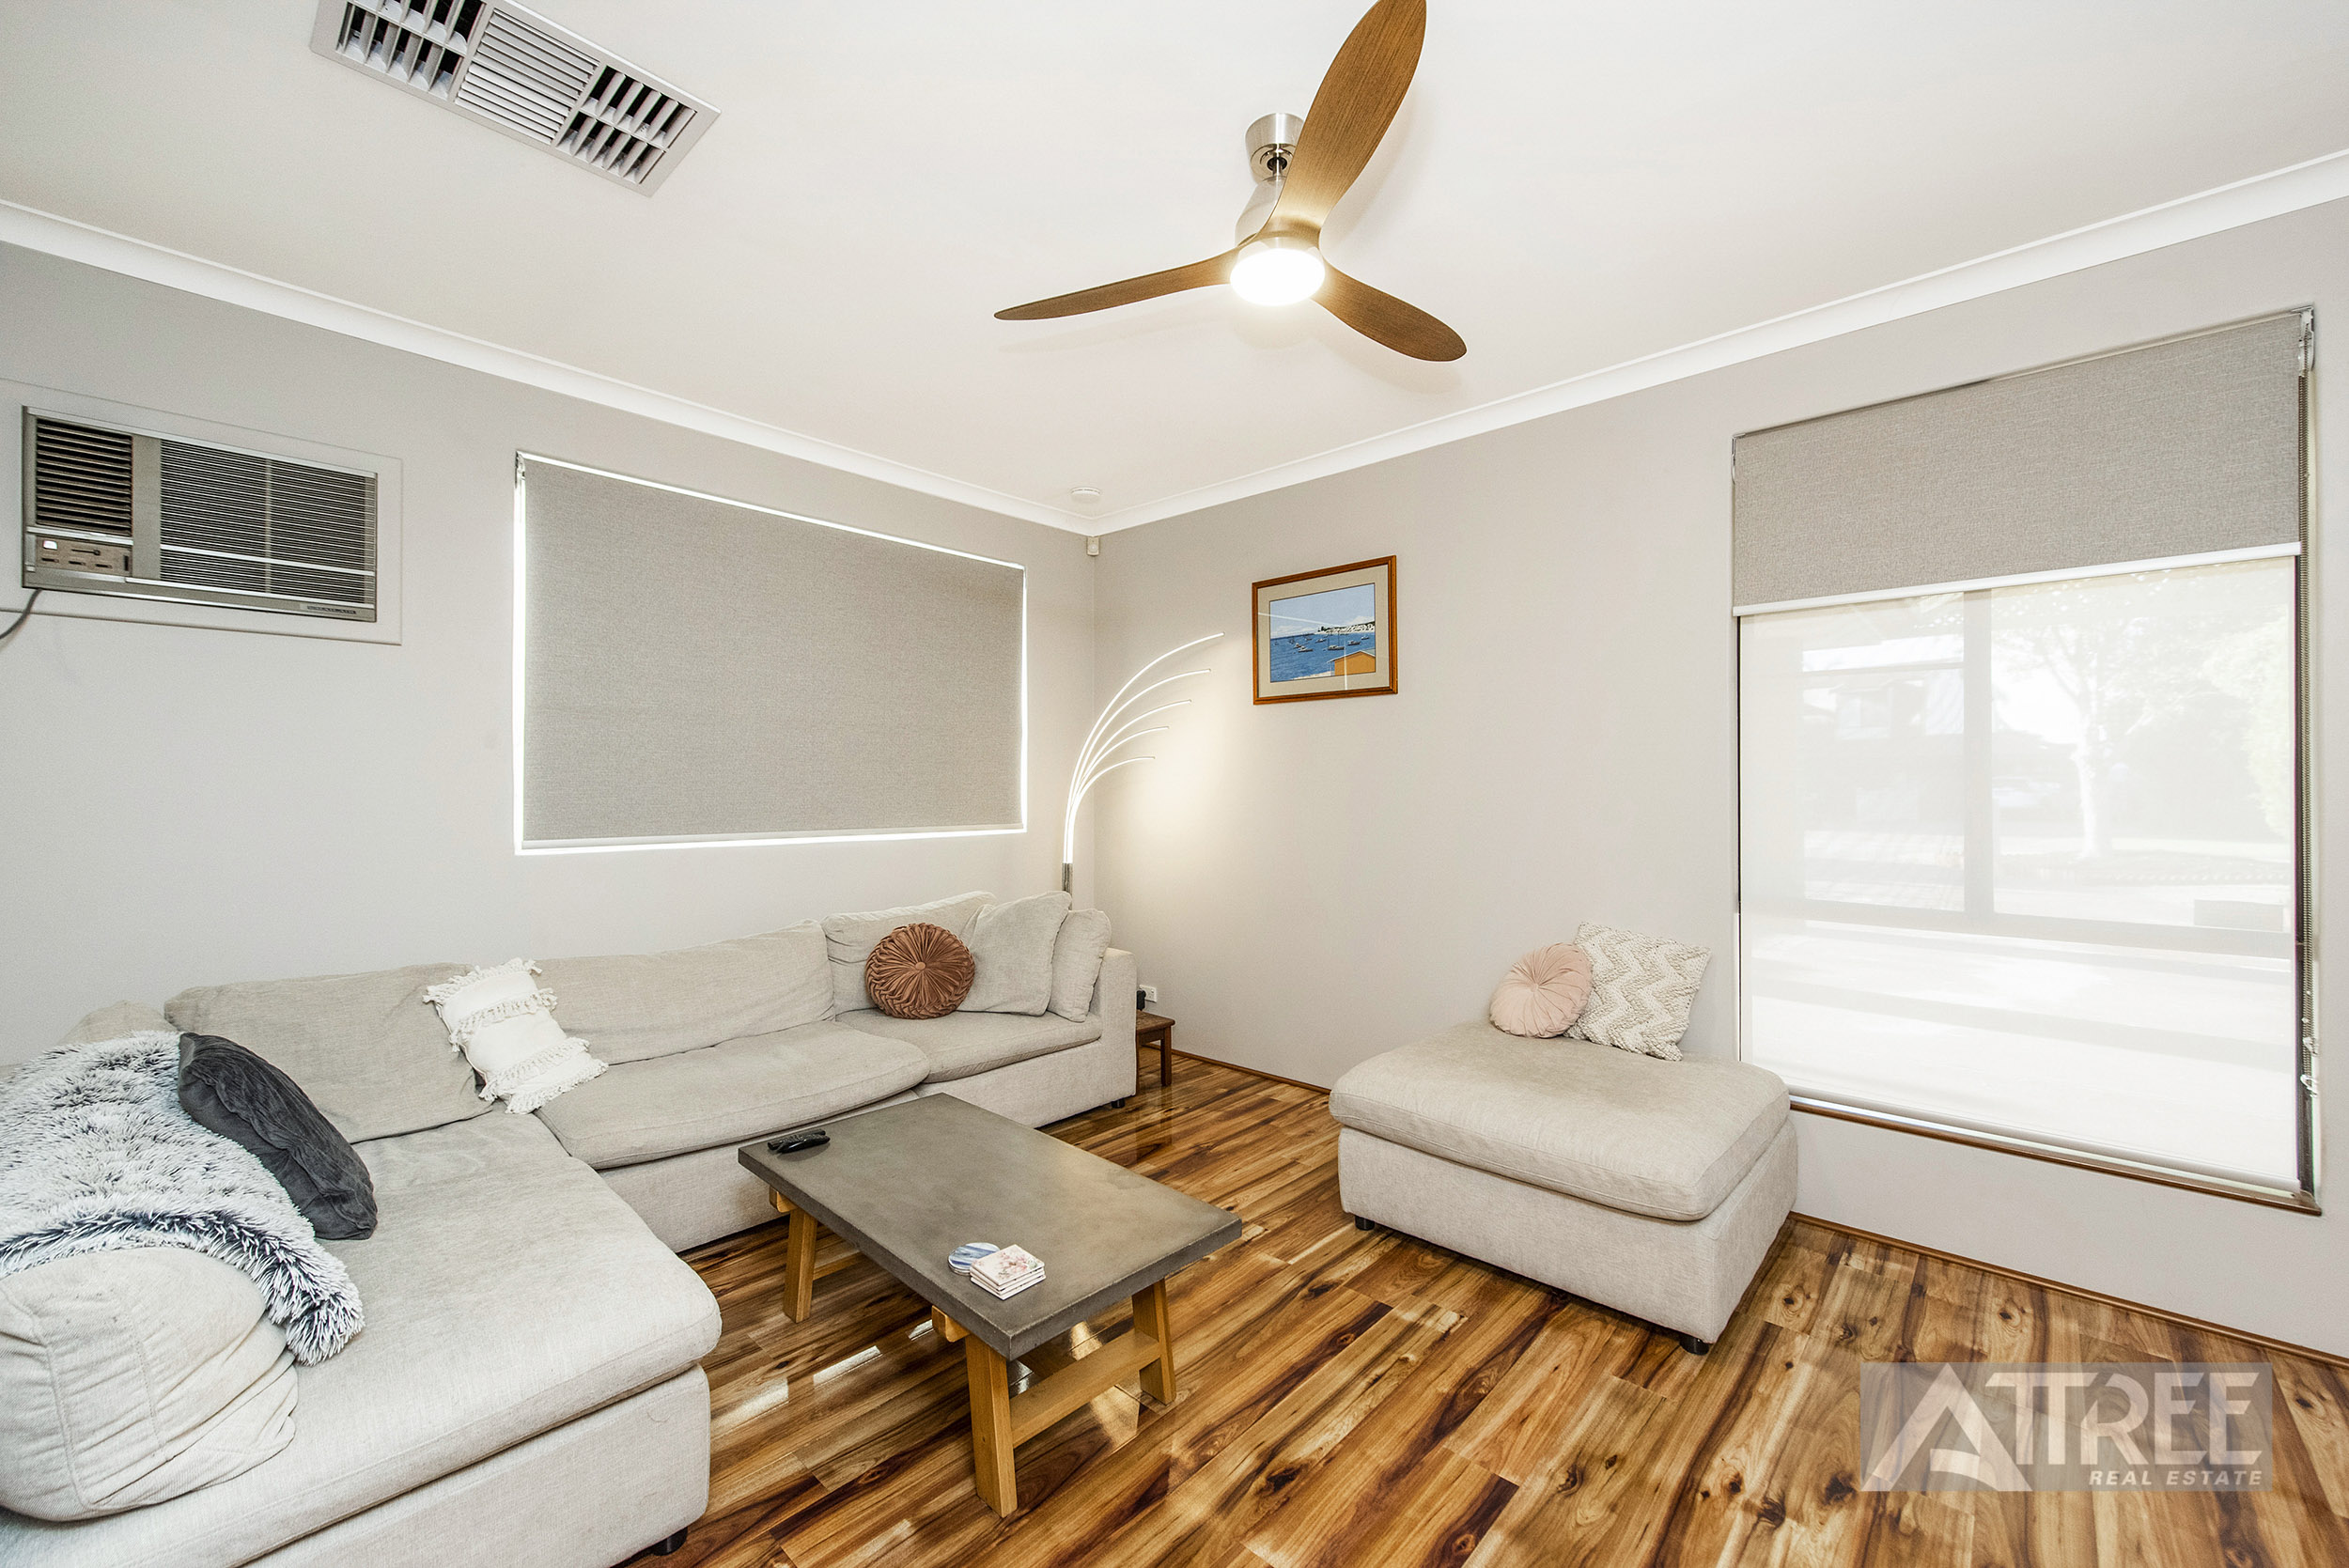 Property for sale in THORNLIE, 12 Parkway Road : Attree Real Estate